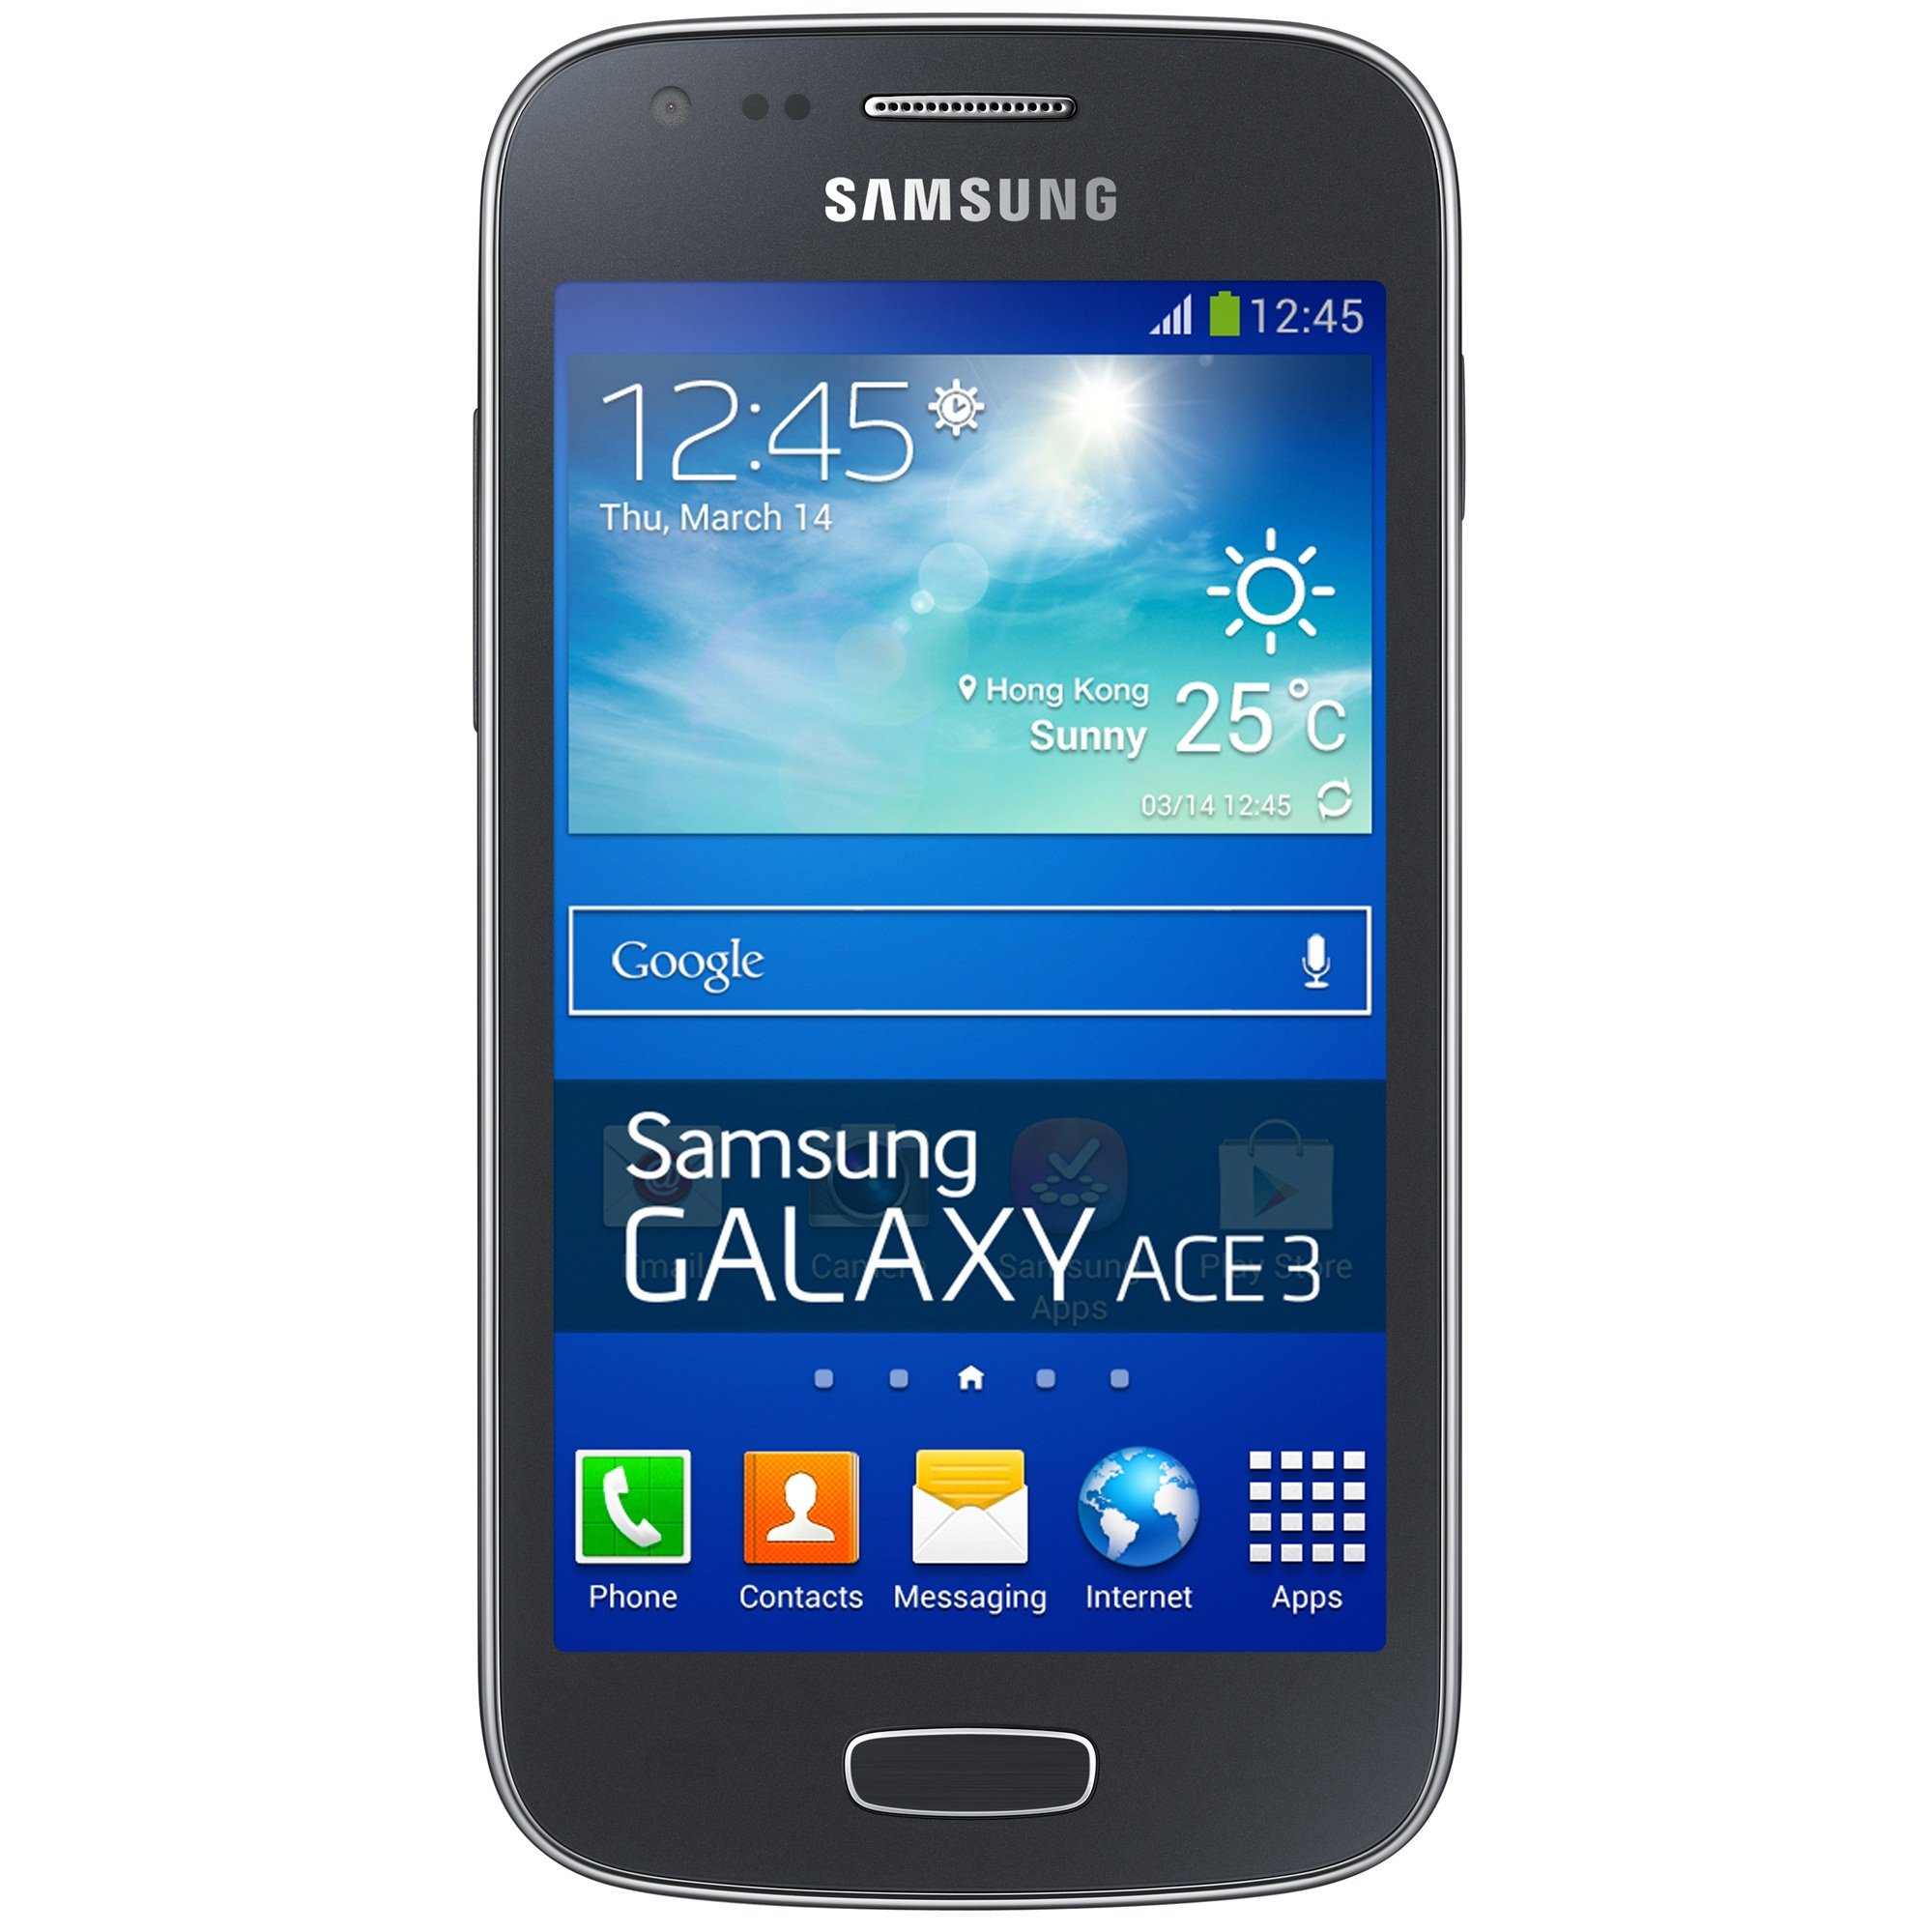 Samsung Galaxy Ace 3 specs, review, release date - PhonesData